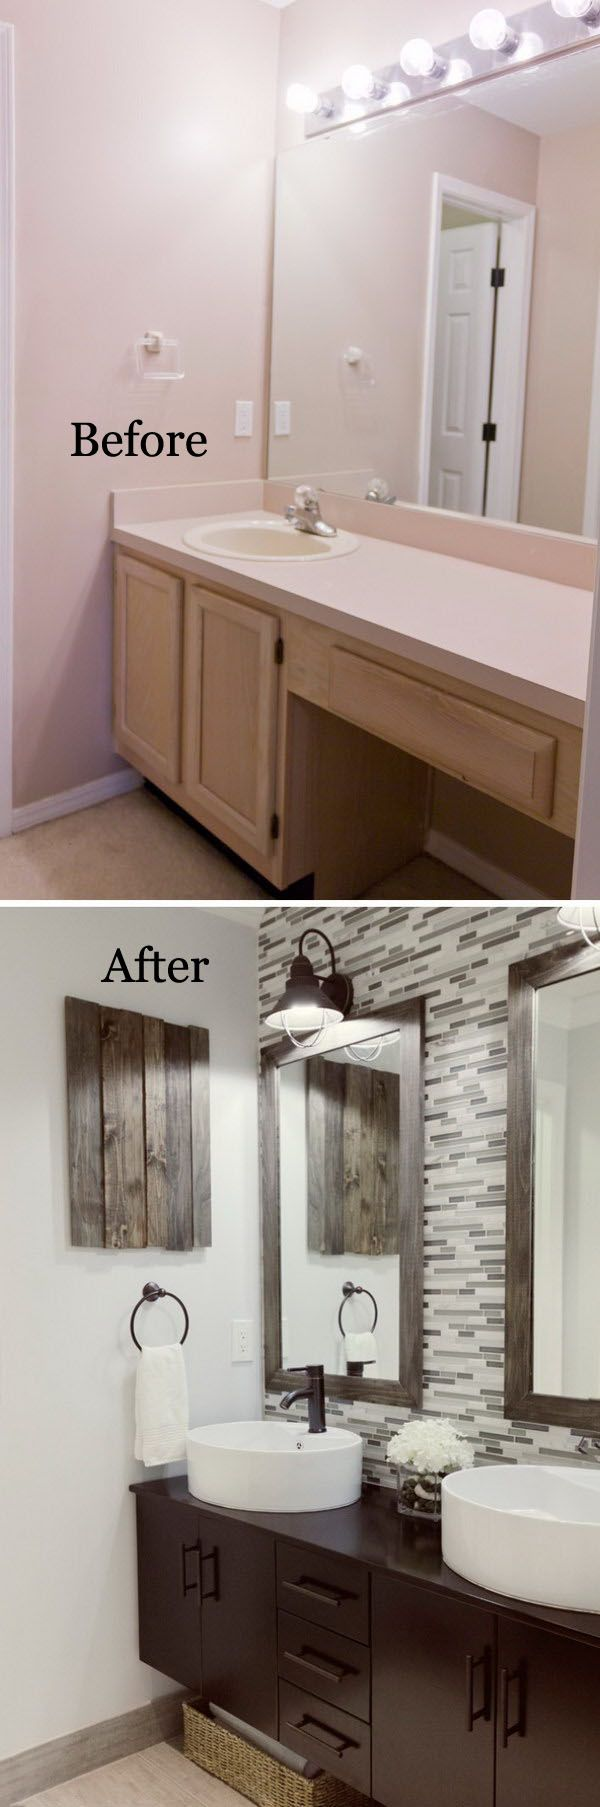 Bathroom Remodel Mirrors best 25+ redo mirror ideas on pinterest | bathroom mirror redo